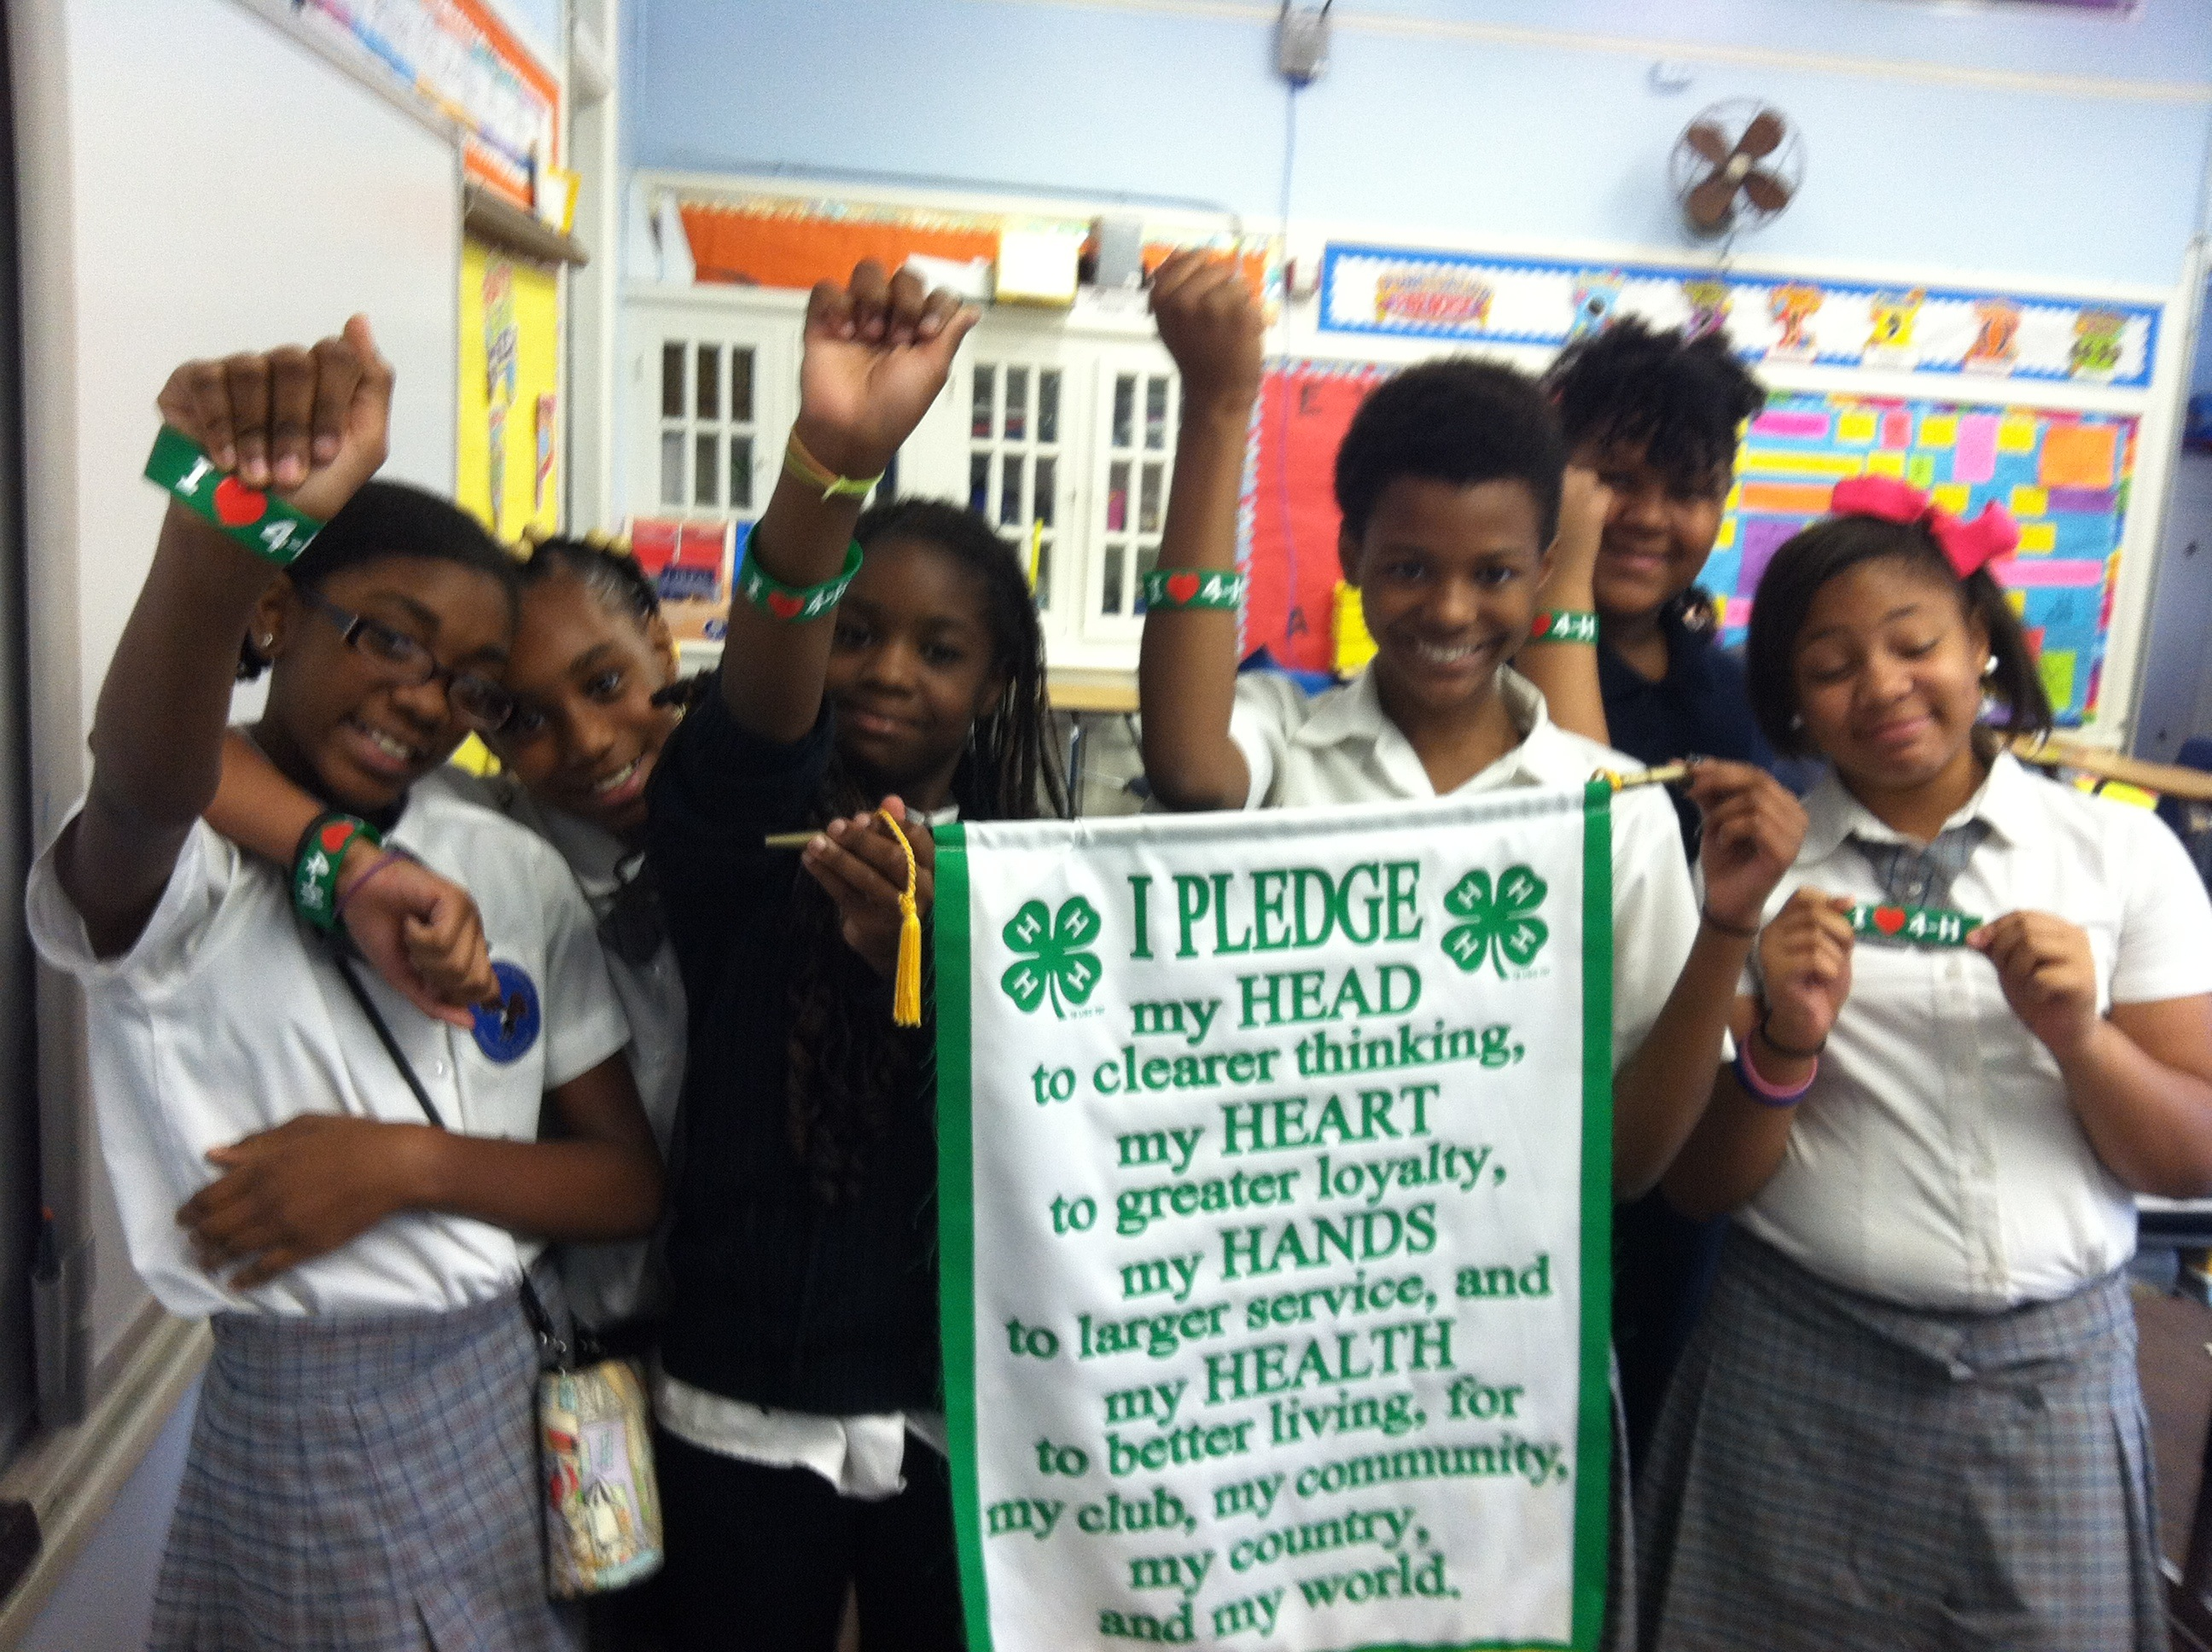 4-H students image